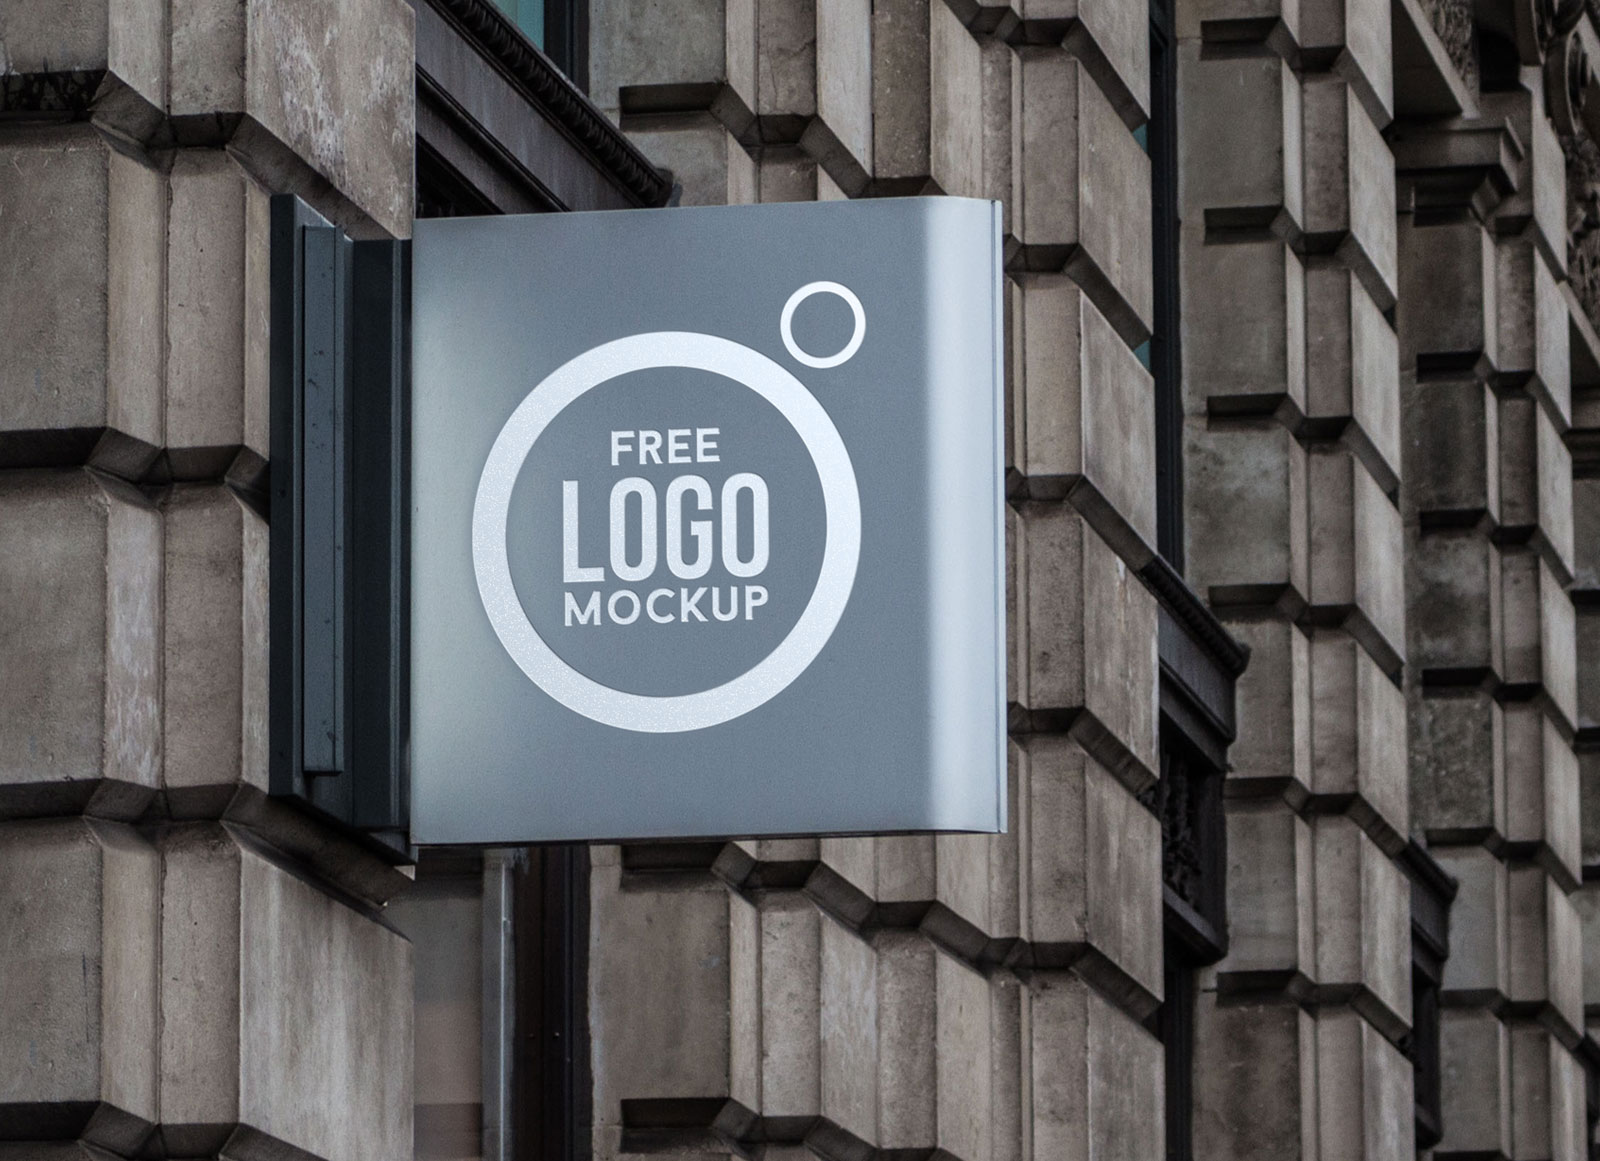 Free-Outdoor-Advertisment-Wall-sign-Mockup-PSD